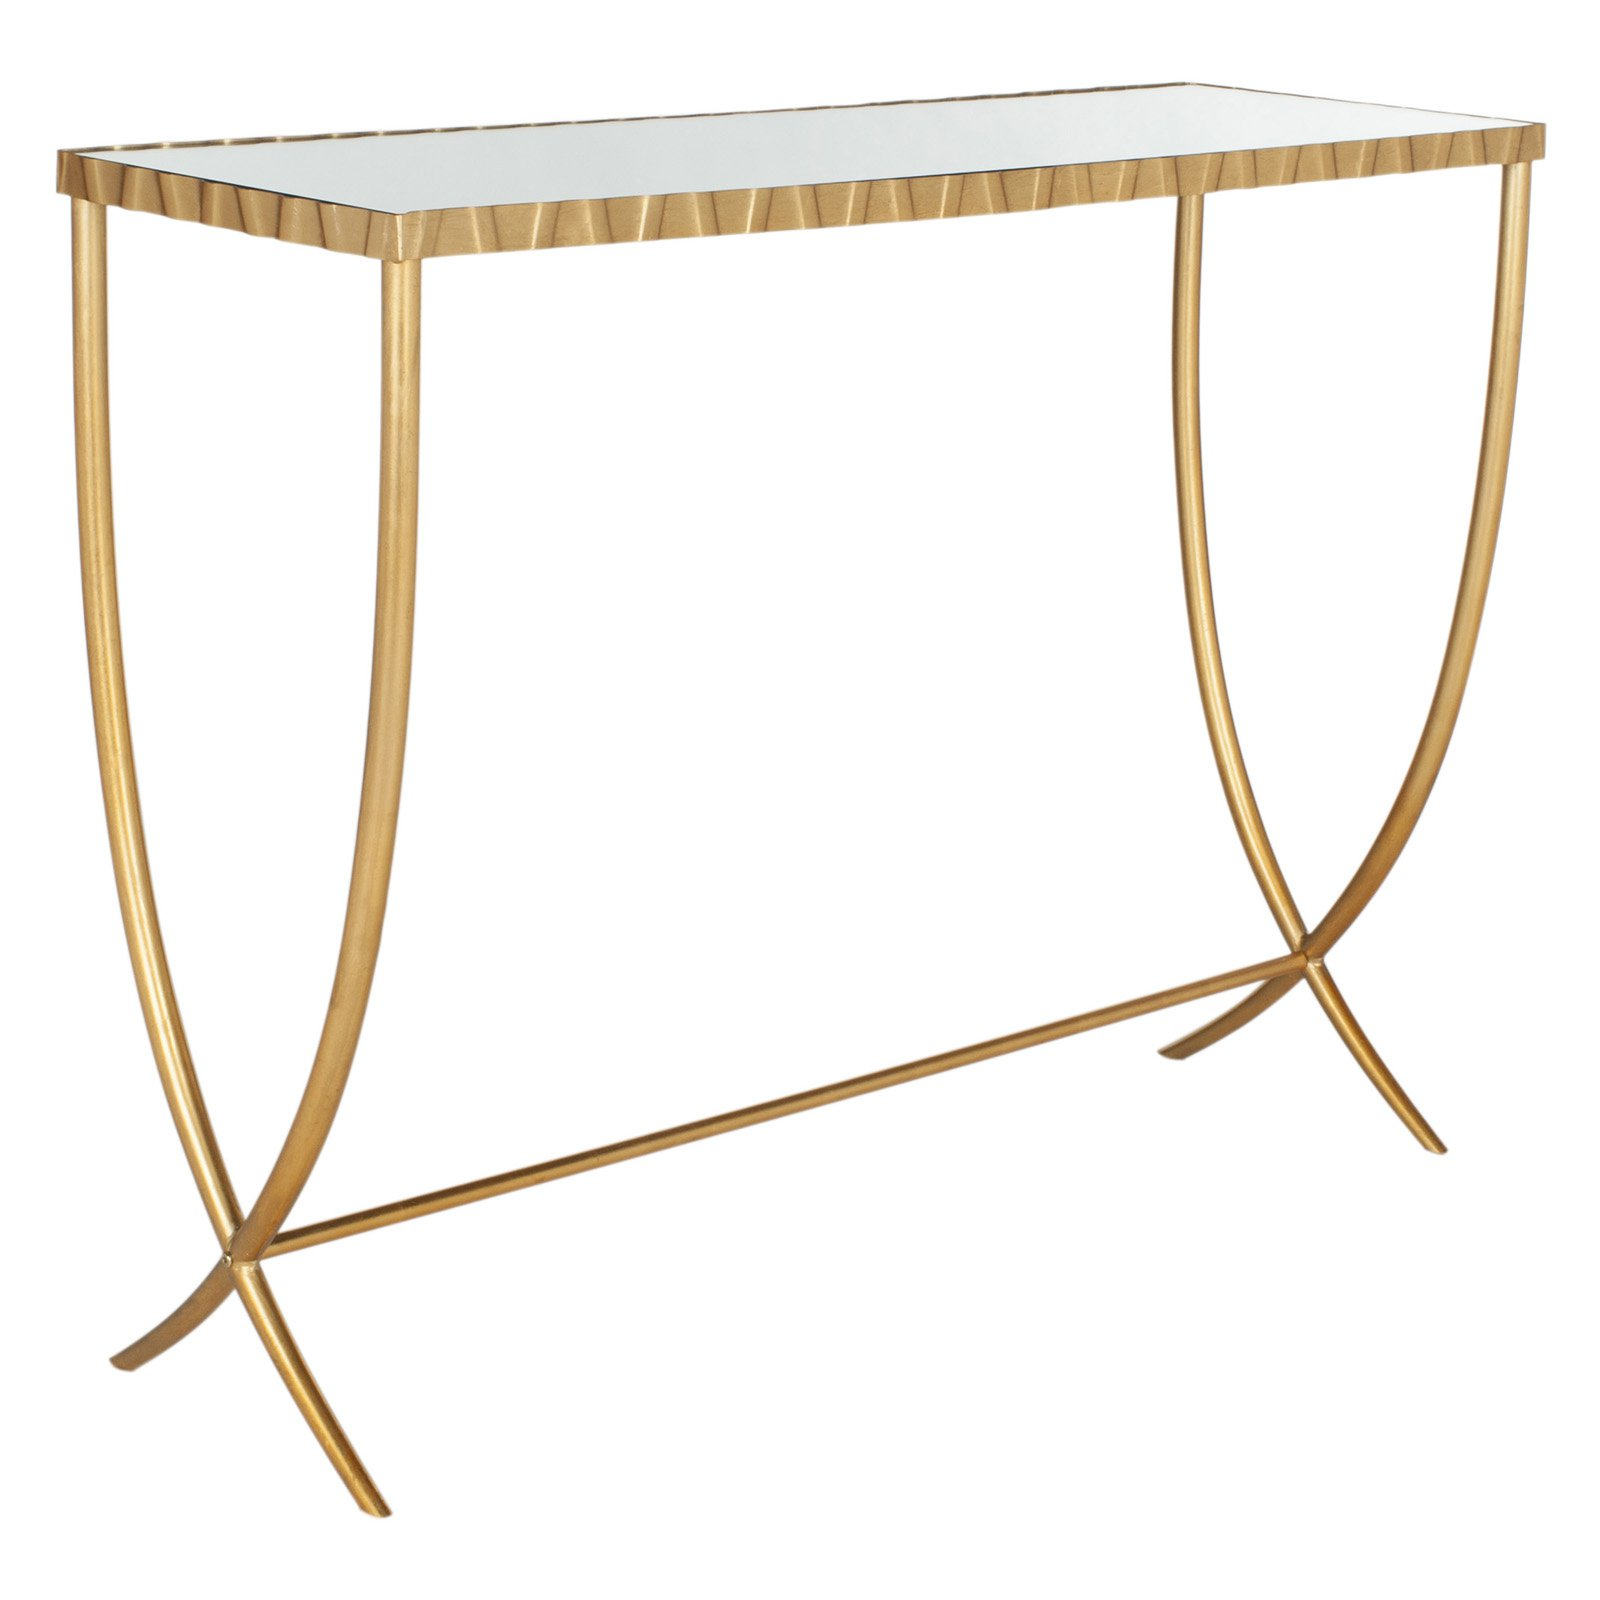 Safavieh Princess Console Table, Gold/Mirror